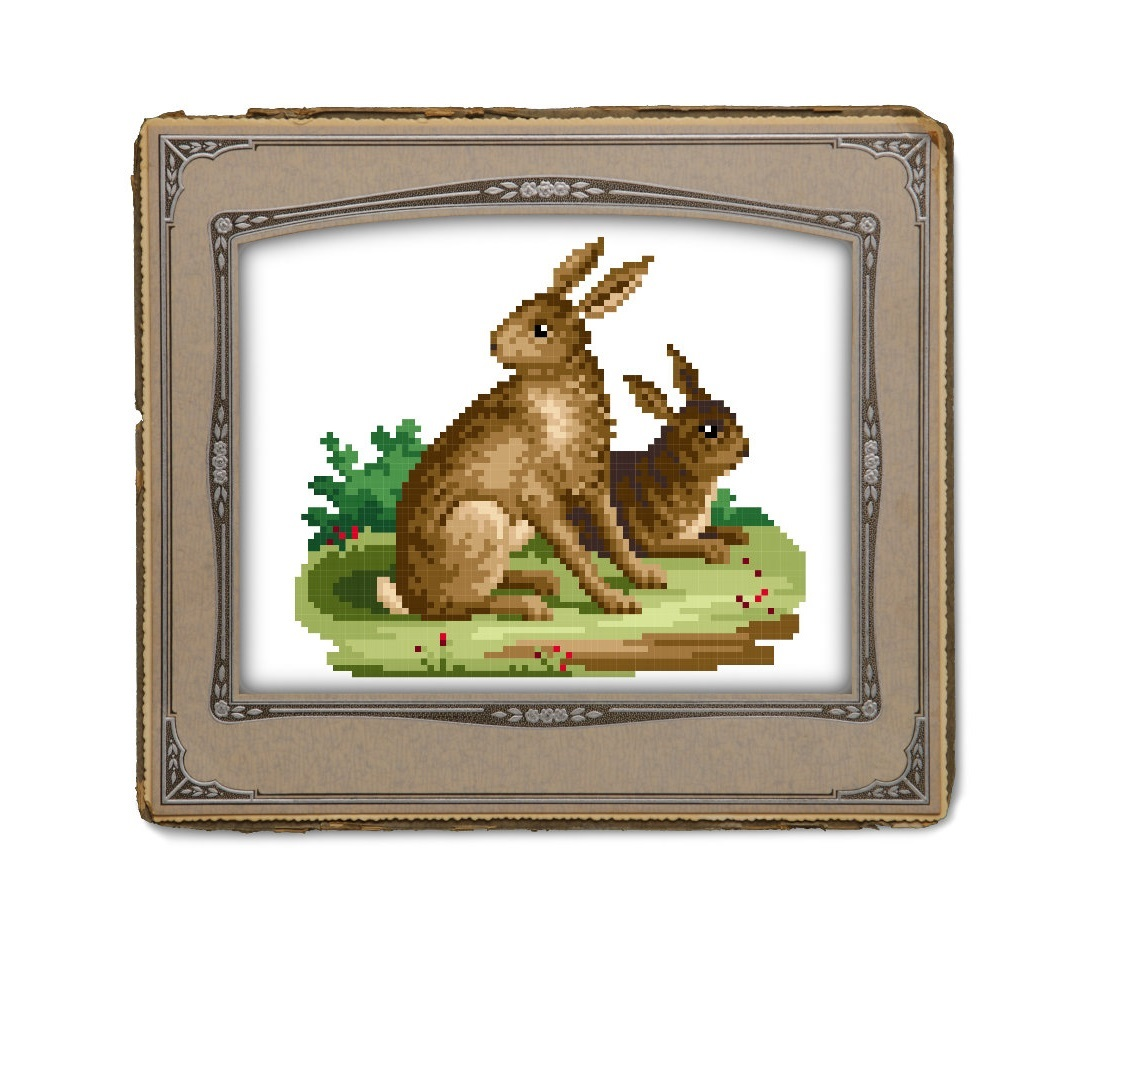 Two brown bunny rabbits - cross stitch pattern.